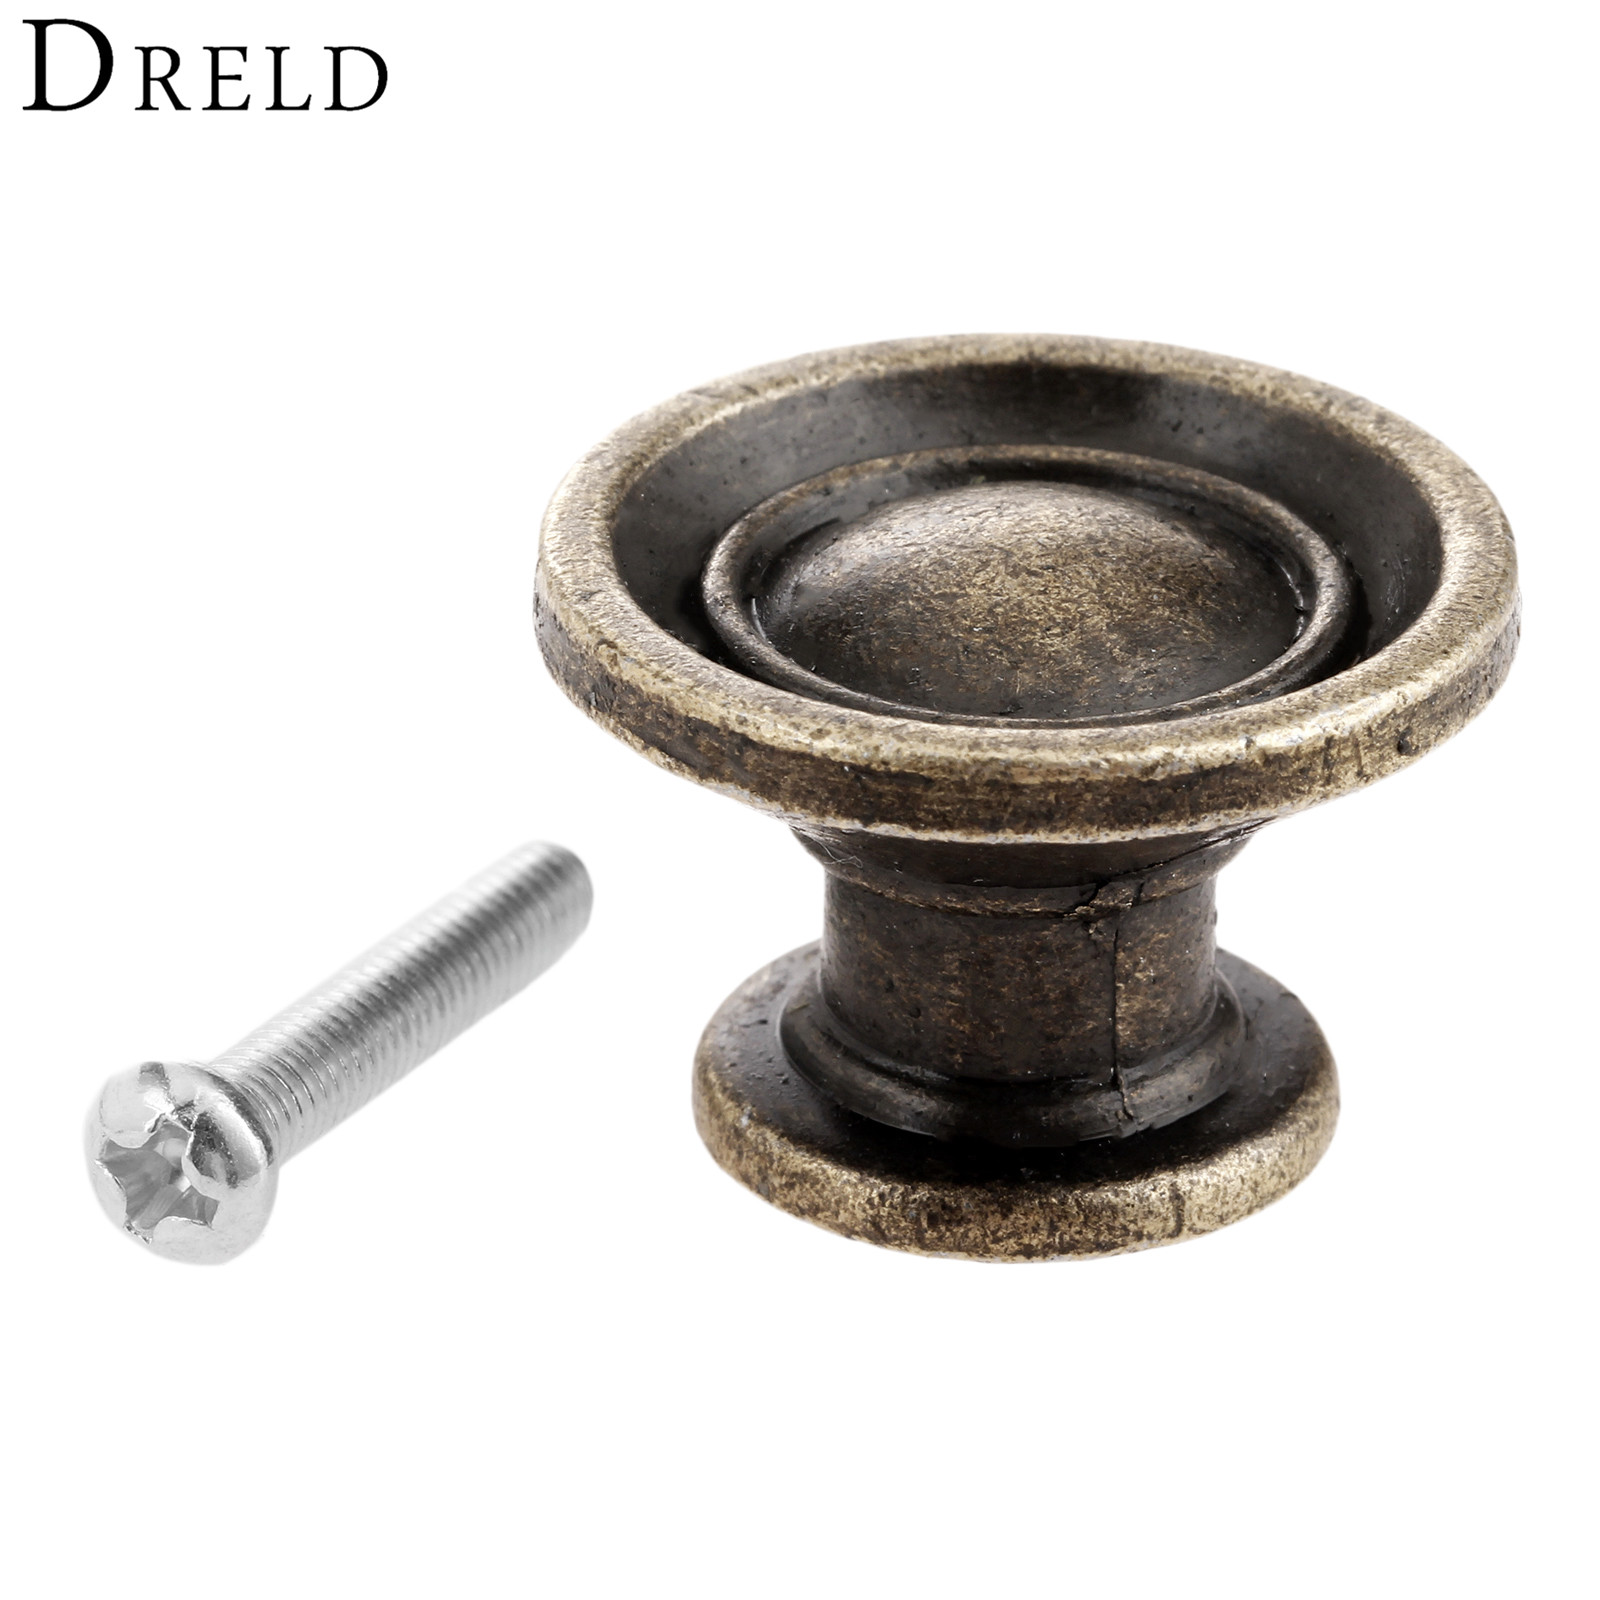 DRELD 1Pc Antique Bronze Furniture Handle Cabinet Knobs and Handles Kitchen Drawer Cupboard Pull Door Handles Furniture Fittings 1 pair vintage furniture cupboard wardrobe handles and knobs antique bronze alloy kitchen cabinet door drawer pull handle 64mm